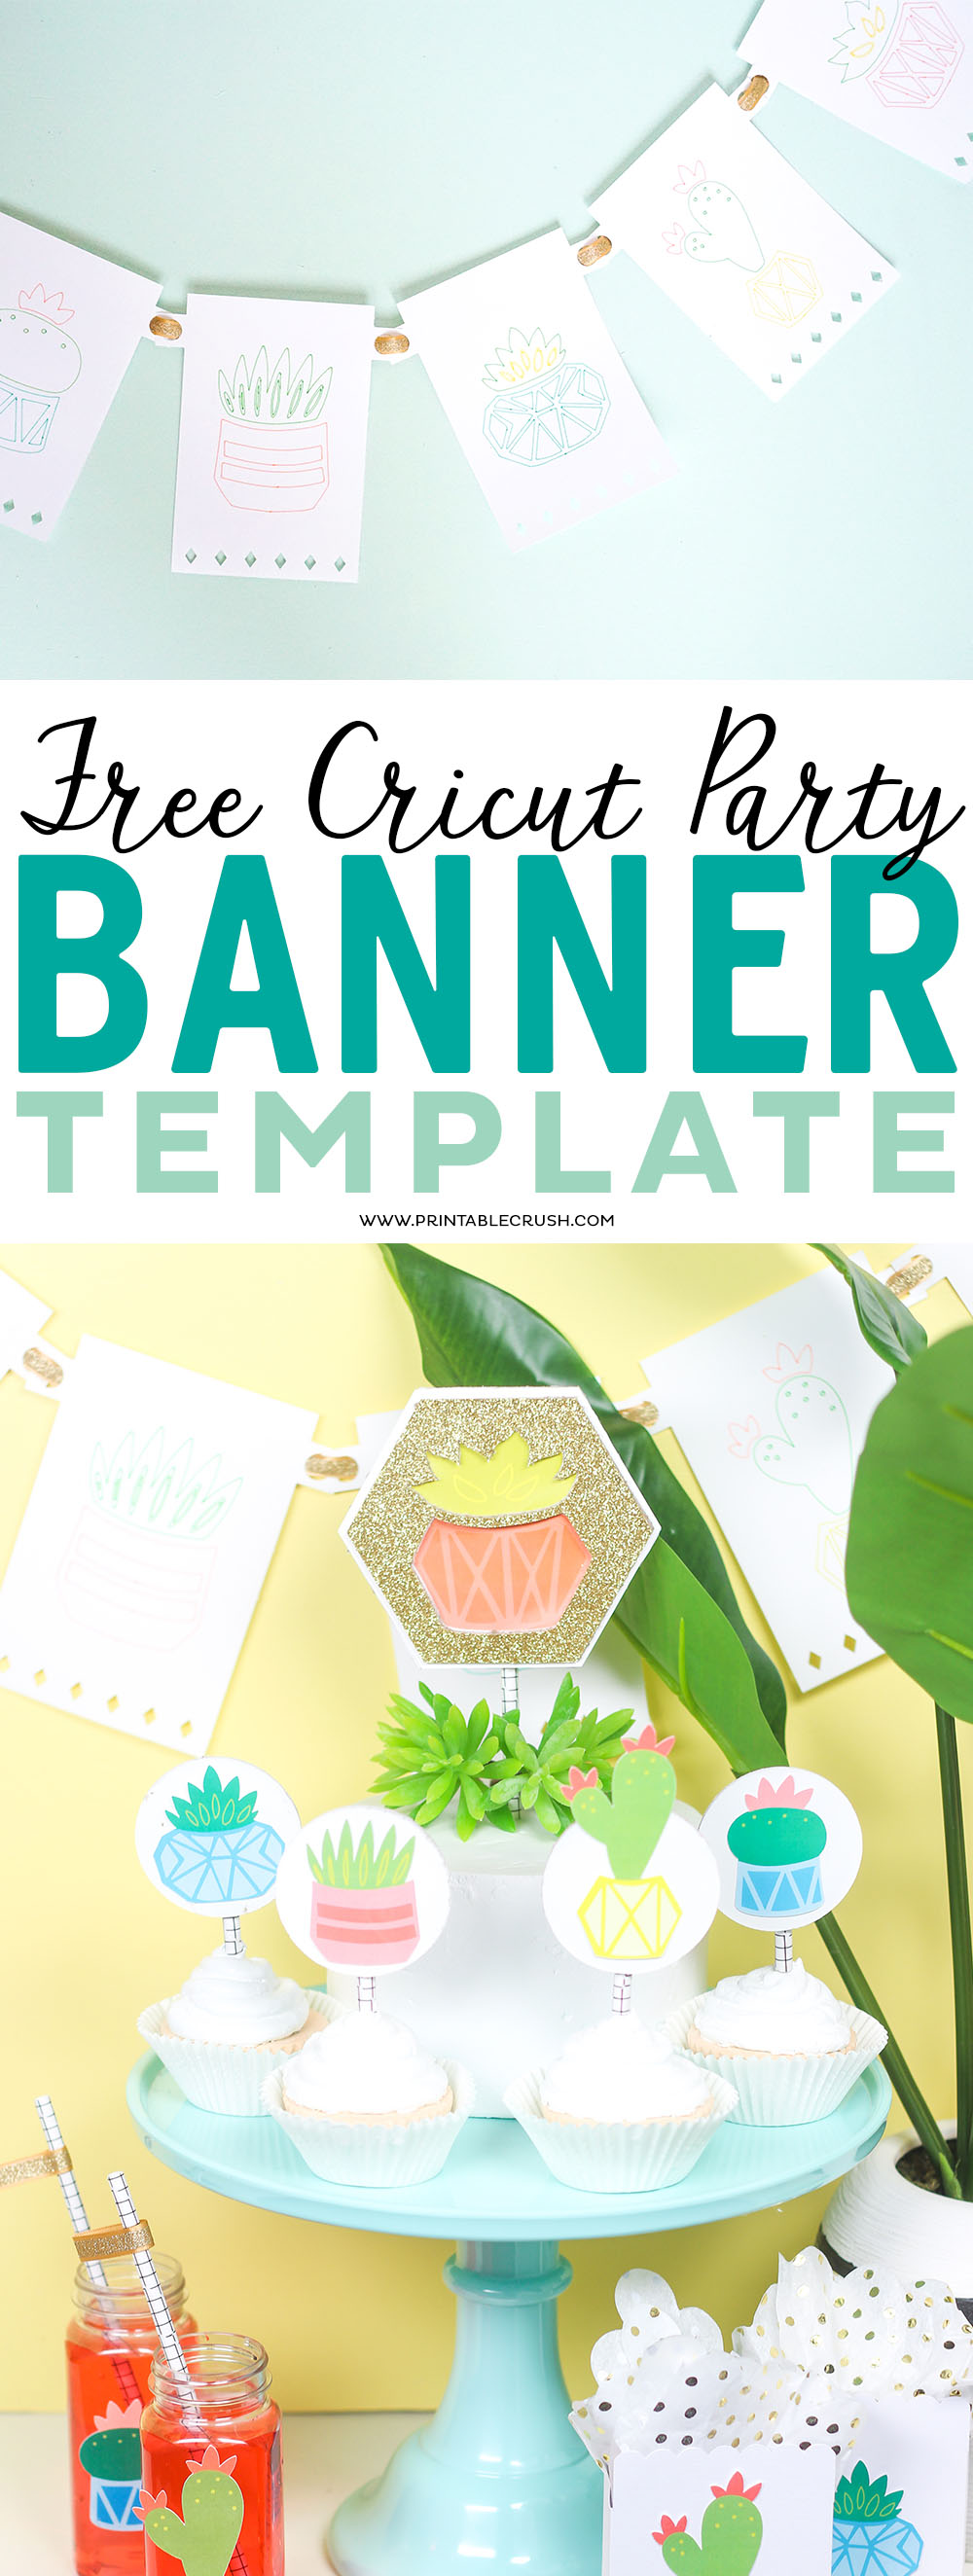 Make your own banner design with this free Cricut Party Banner Template. BannerFile will open up right in Cricut Design Space - so no need to download! #cricut #cricuttutorial #partybanner #partyideas via @printablecrush